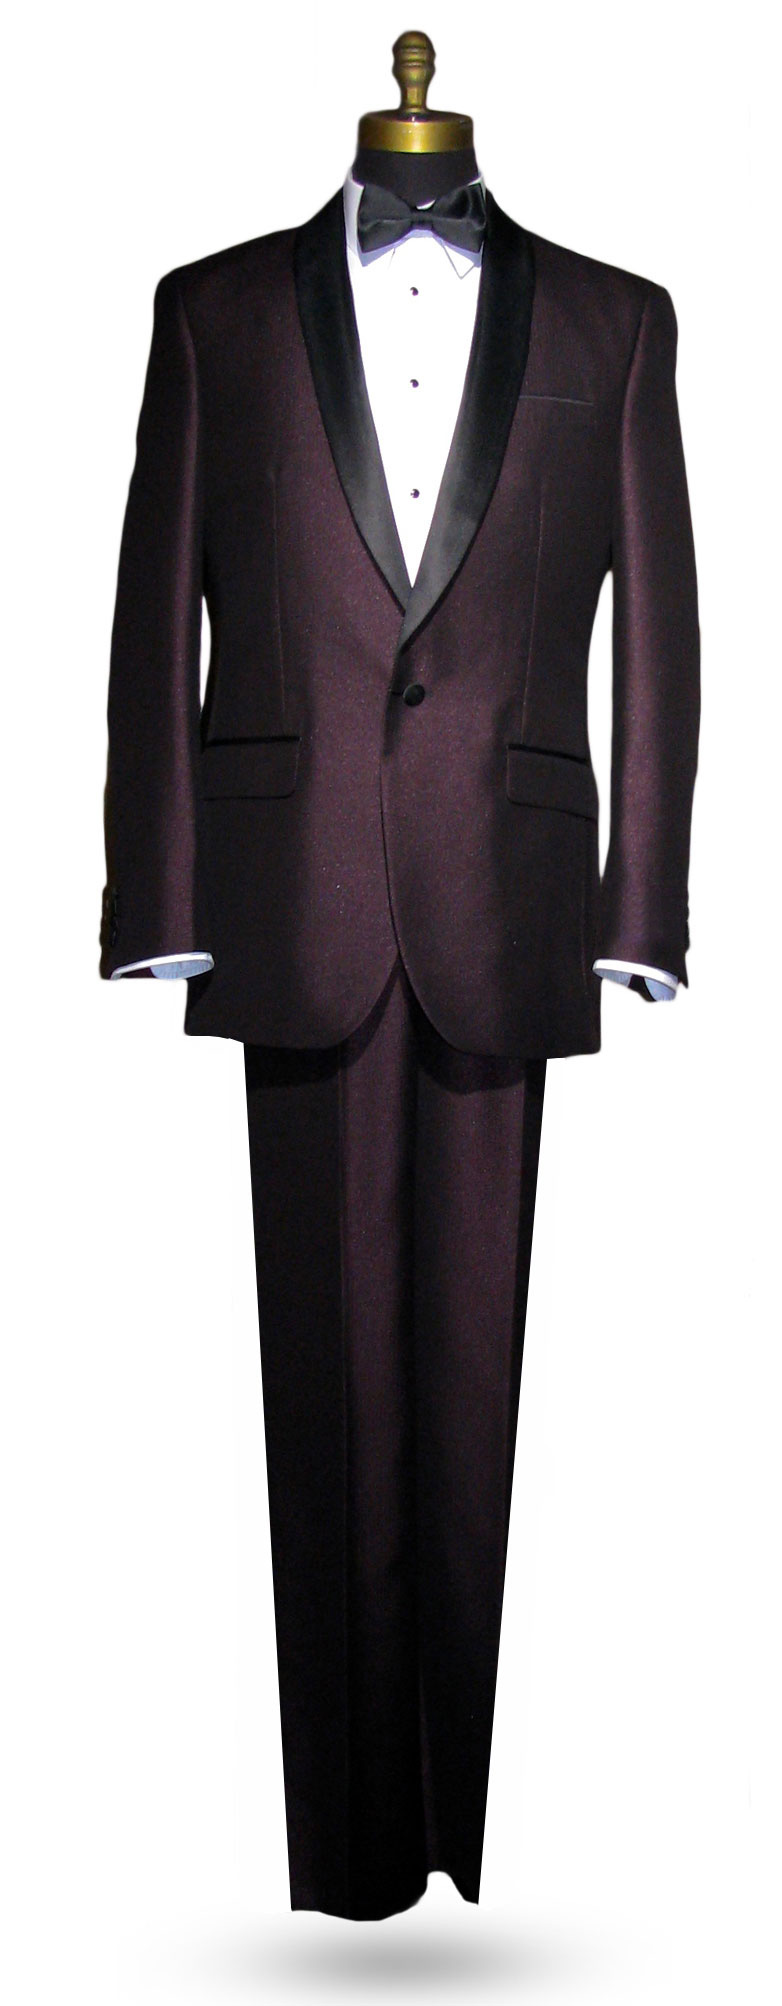 Plum Shawl Collar Tuxedo - 3 Piece - Shiny Fabric